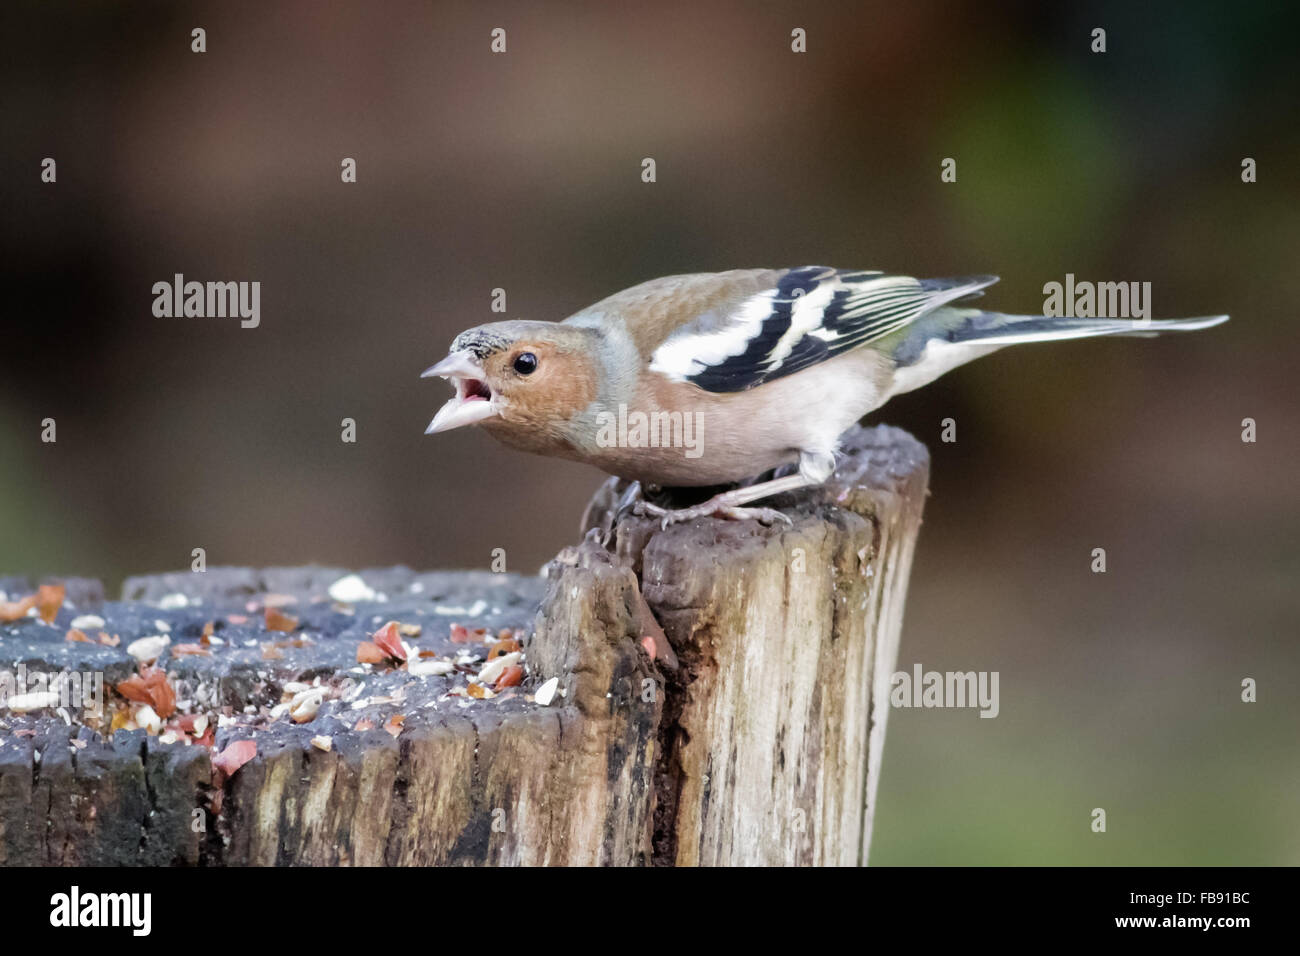 Male Chaffinch (Fringilla coelebs) warding off other birds from the feeding station. - Stock Image